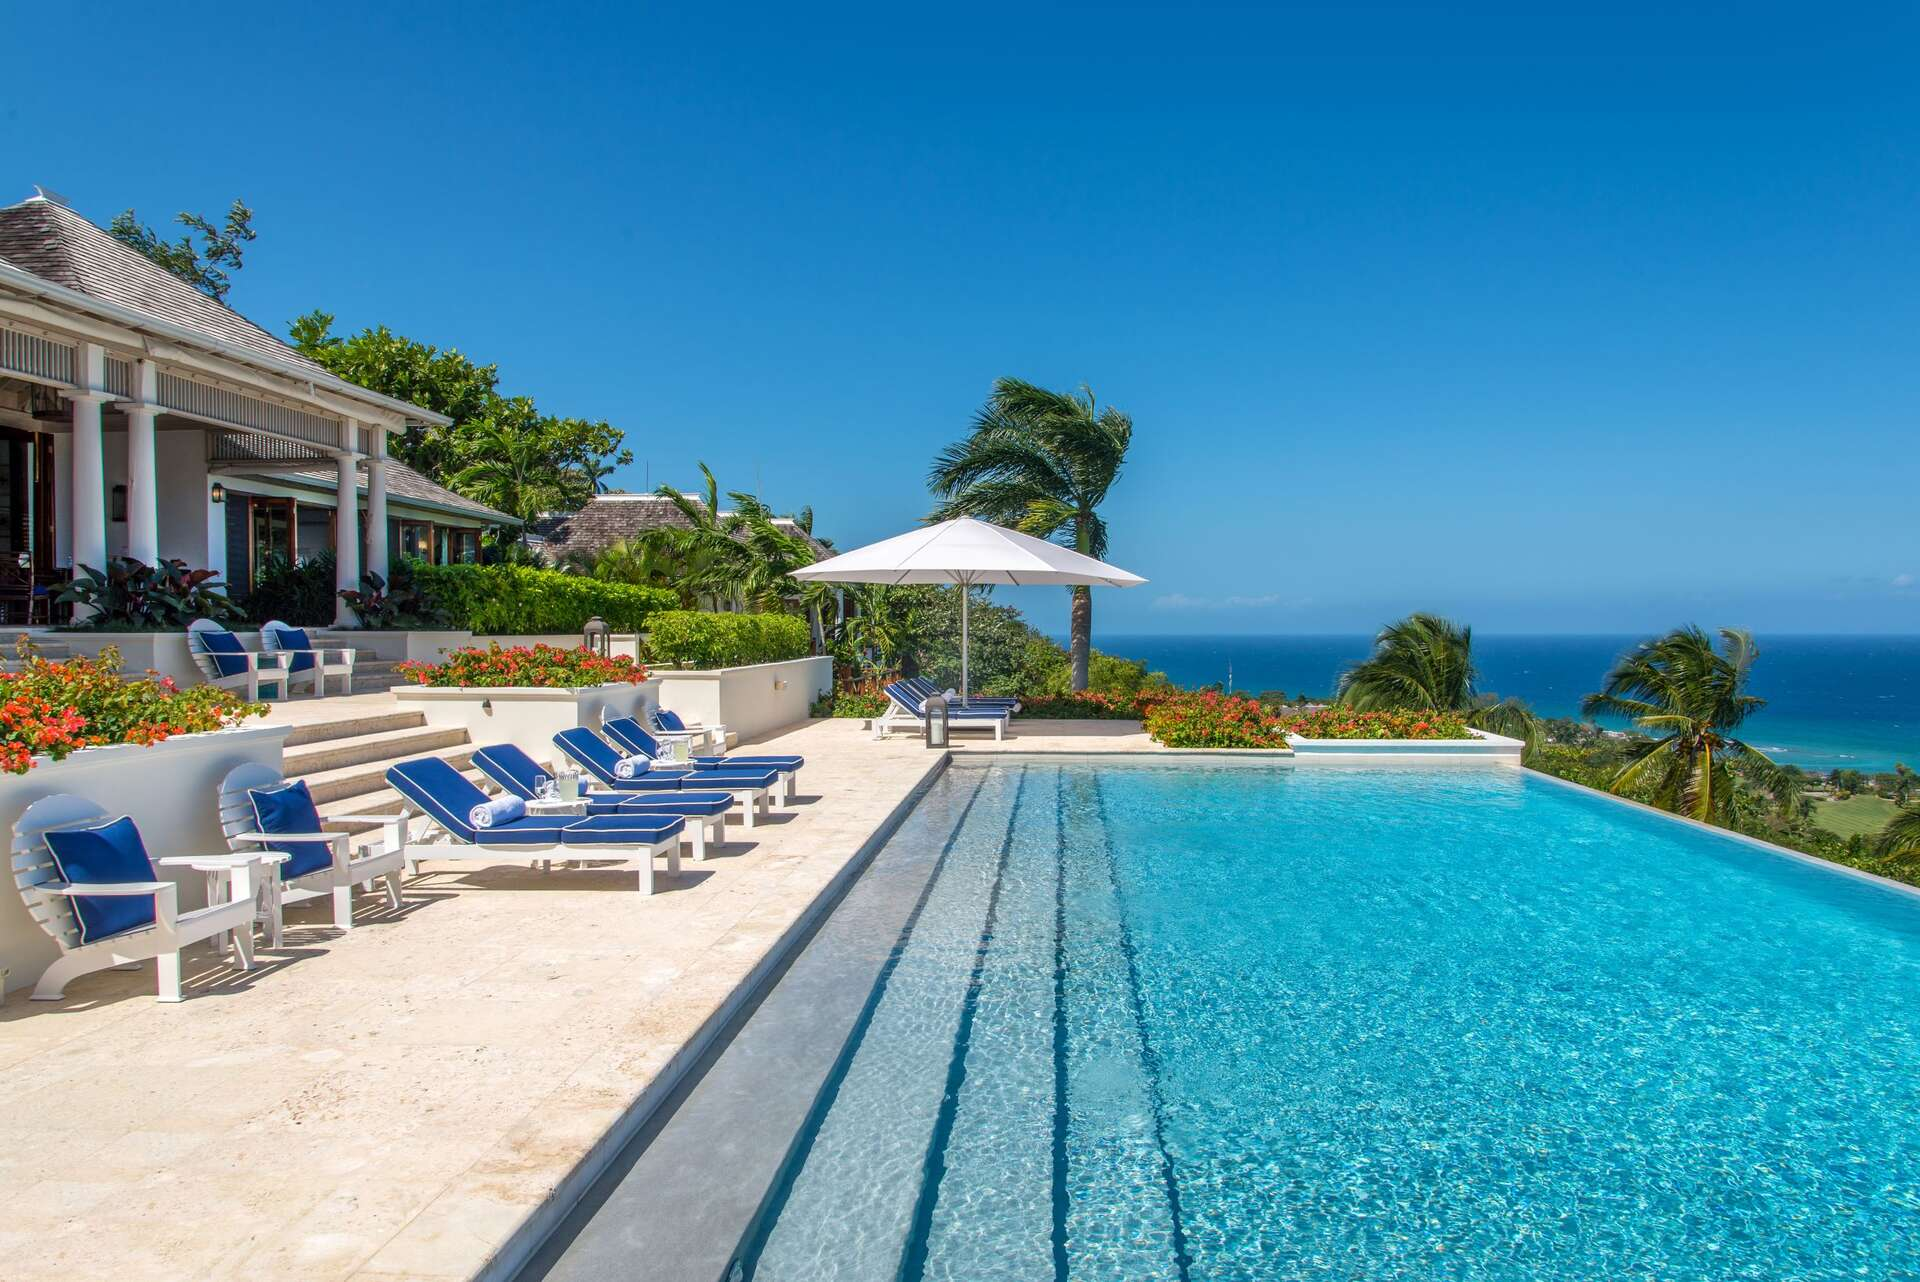 Luxury villa rentals caribbean - Jamaica - Try all club - Hummingbird House - Image 1/27